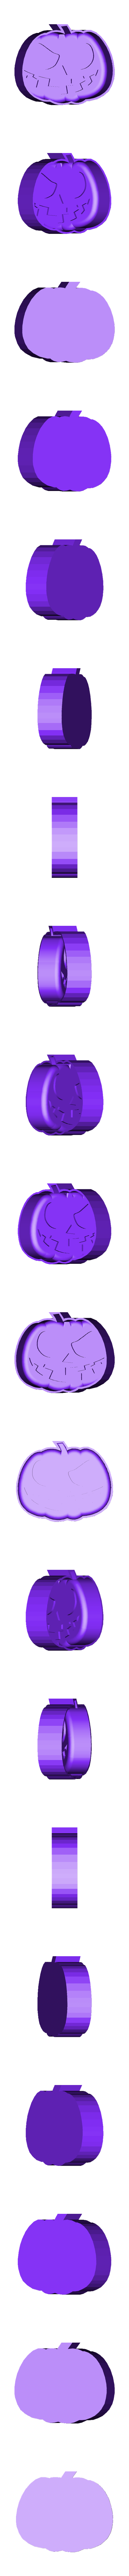 Pumpkin-4.stl Download free STL file Scary Halloween Pumpkin Molds • 3D printable design, crzldesign